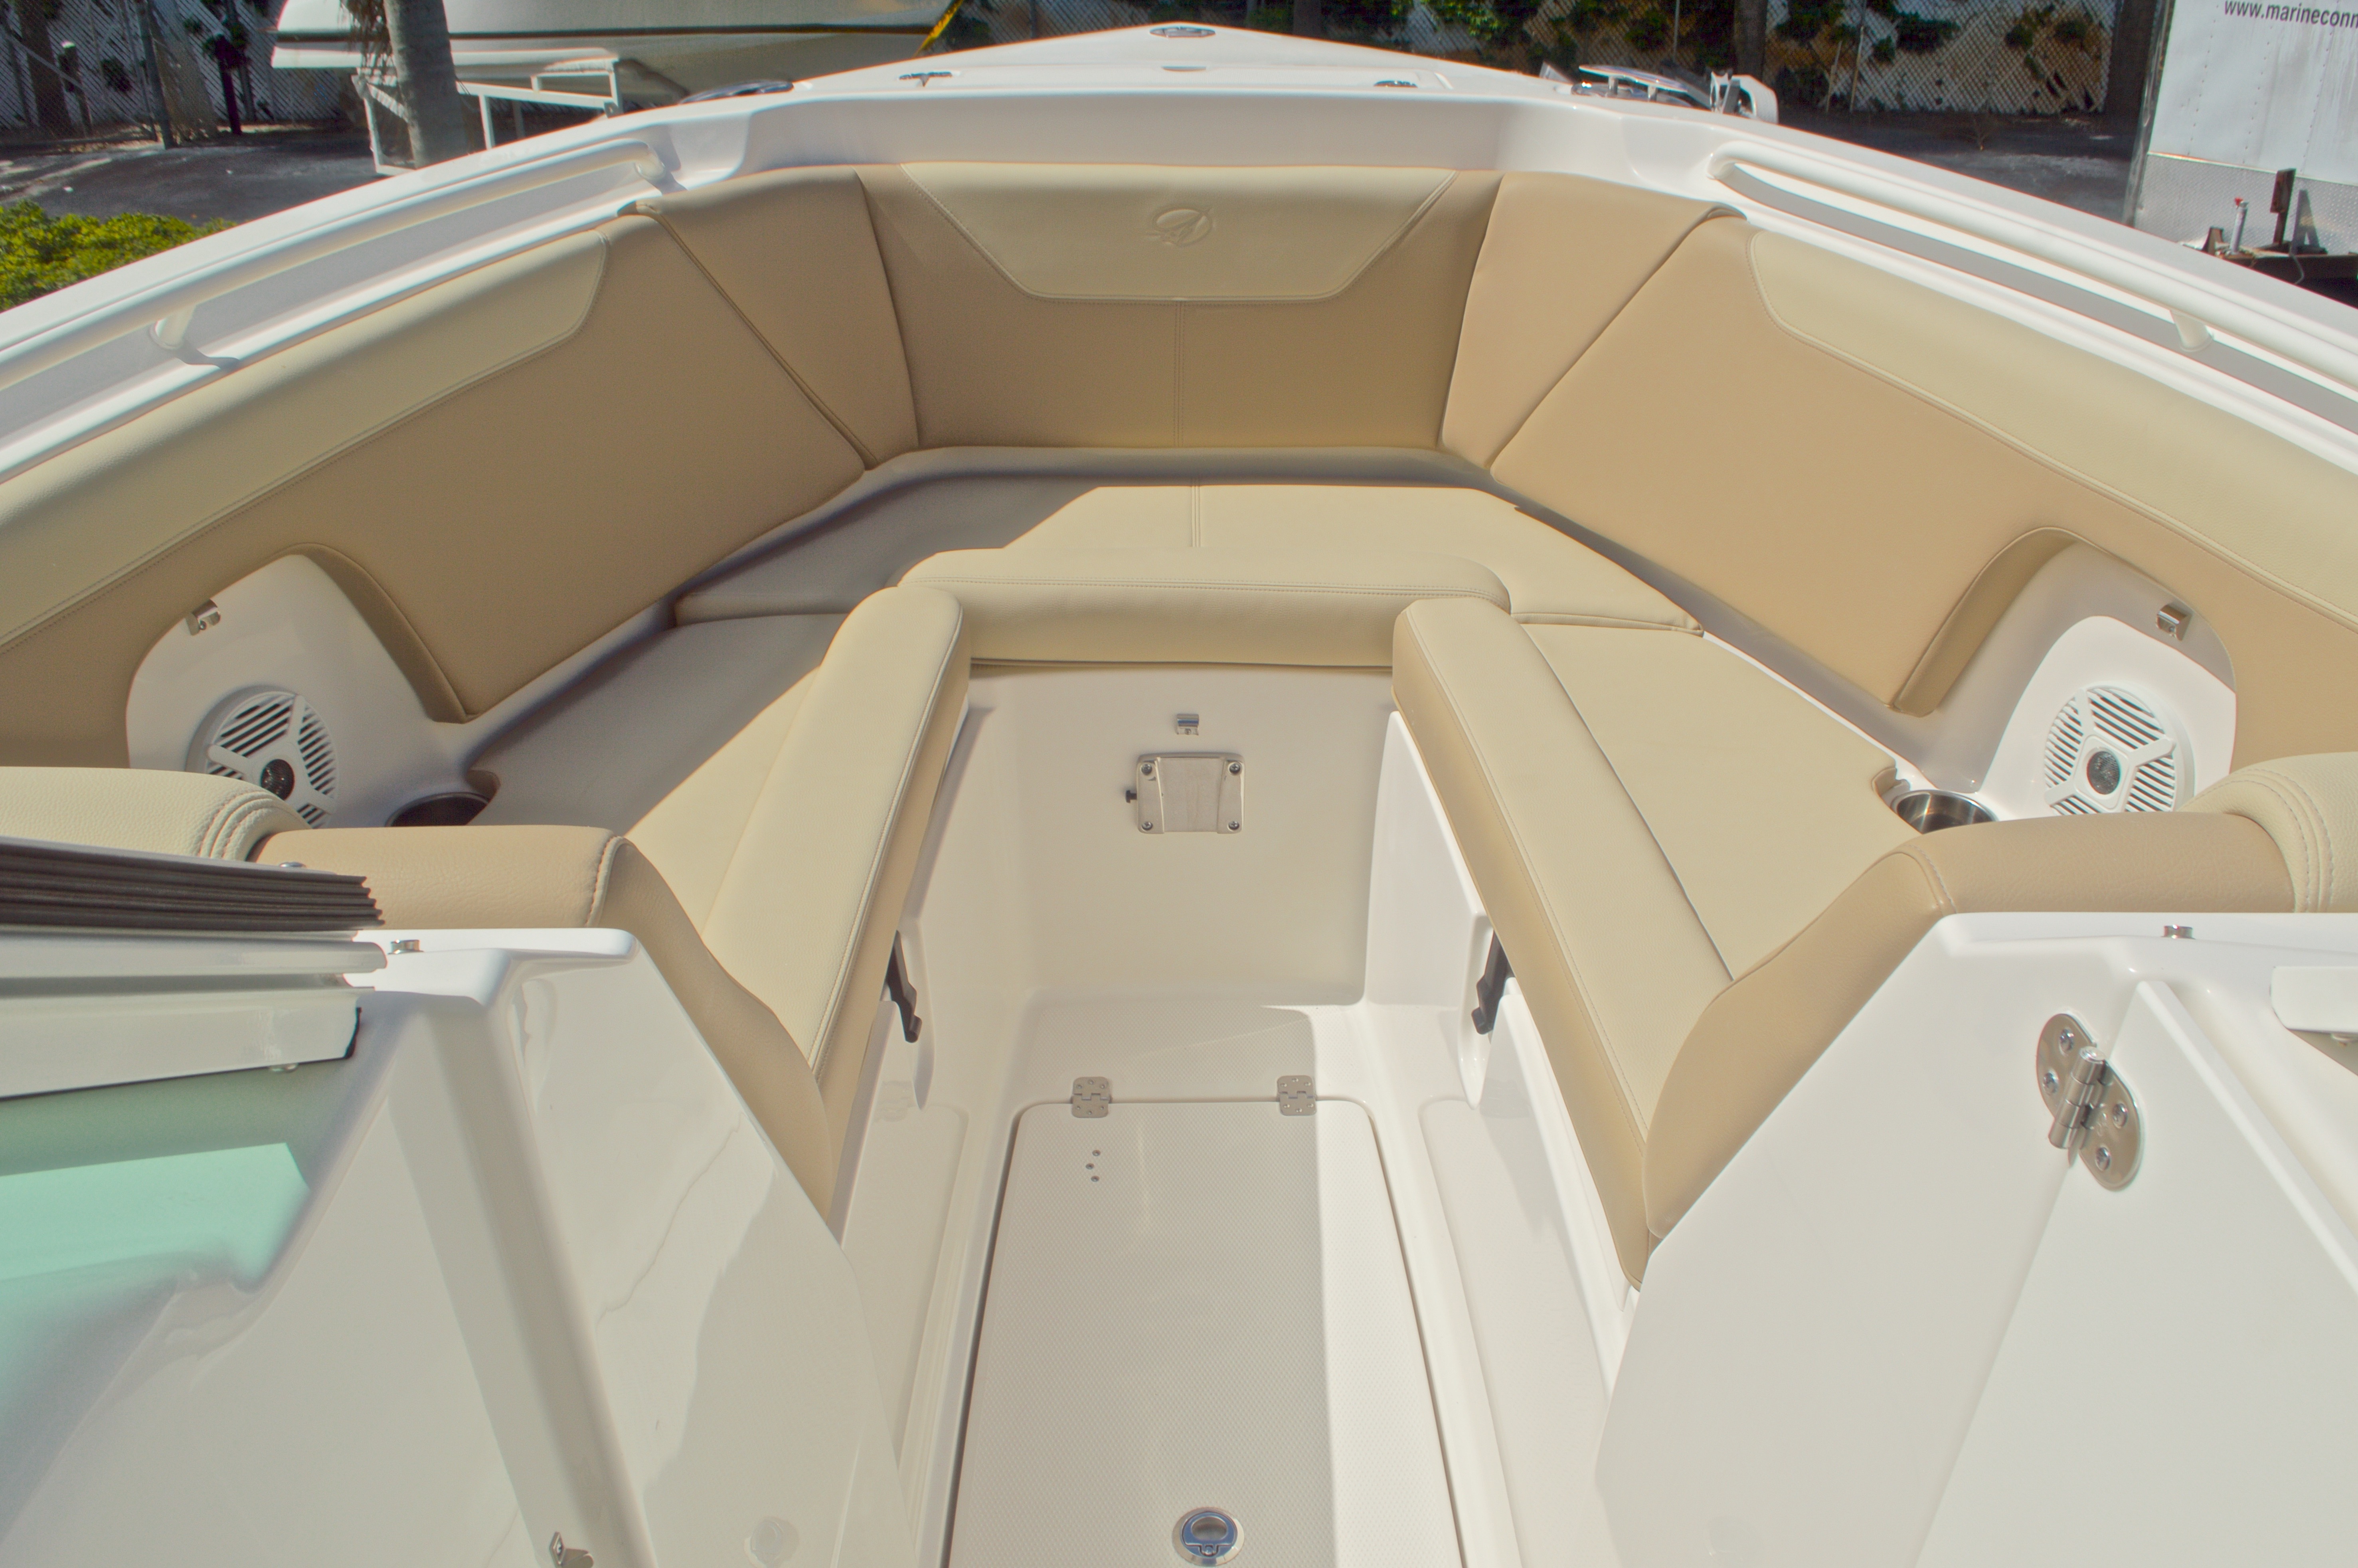 Thumbnail 60 for New 2017 Sailfish 275 Dual Console boat for sale in West Palm Beach, FL